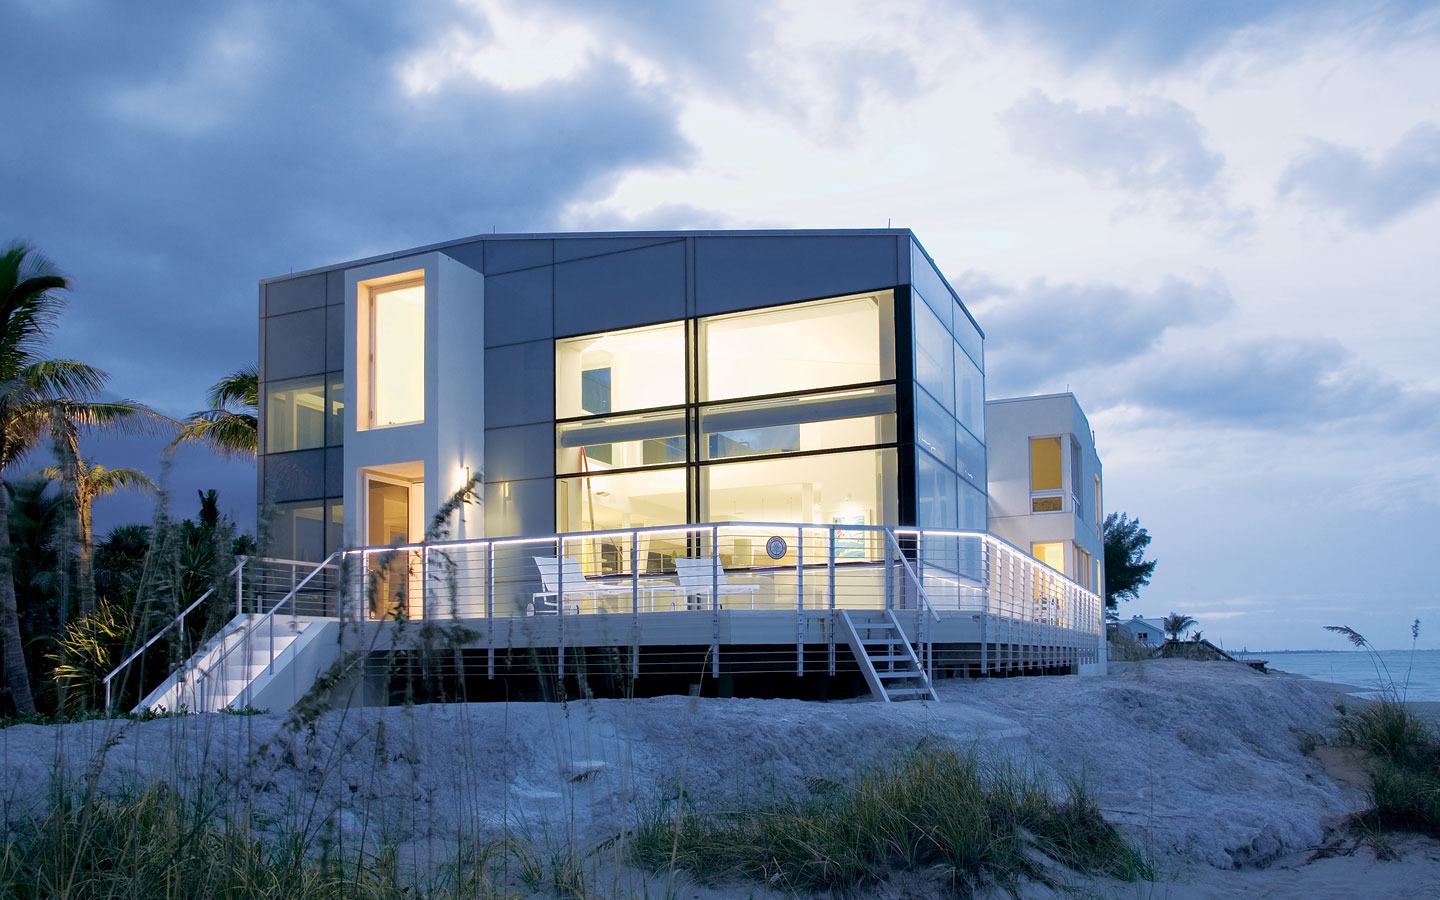 Beach road 2 house in jupiter island dream house beach Modern dream home design ideas